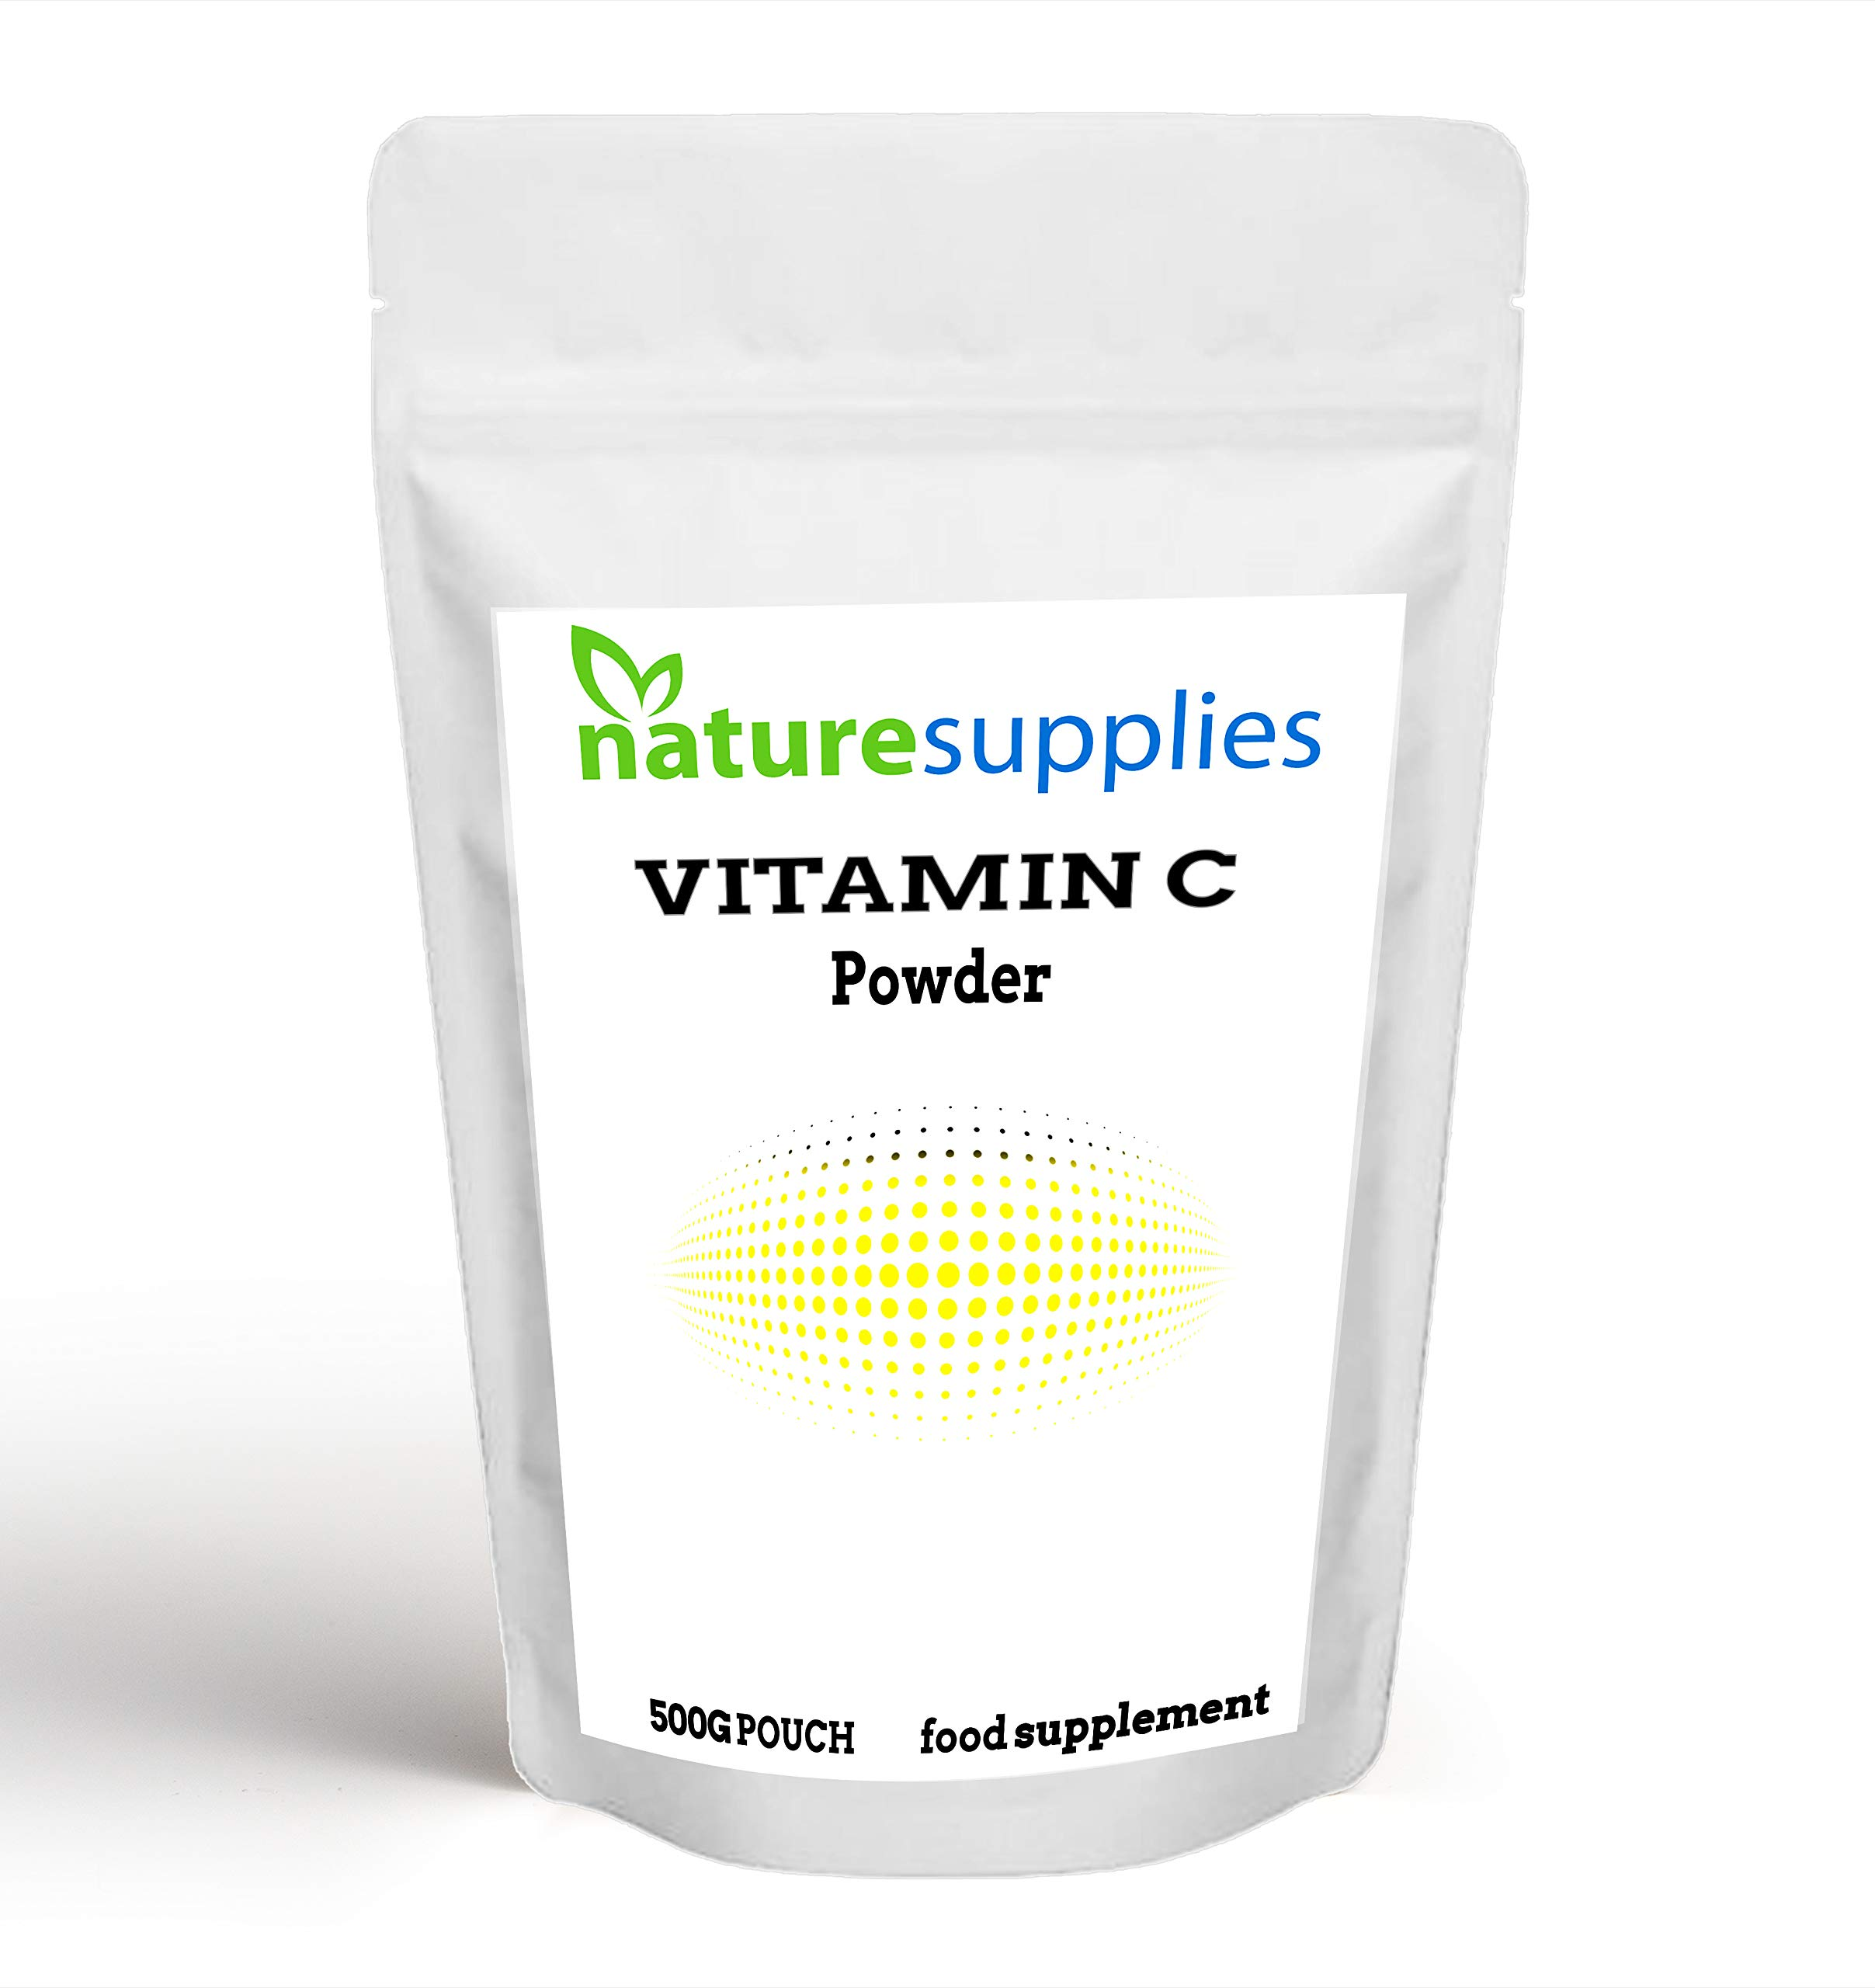 Vitamin C Powder 500g Ascorbic Acid UK Non GMO - Pharmaceutical Grade, Highly Concentrated No Chemicals in Our Supplements - Suitable for Vegans - Naturesupplies